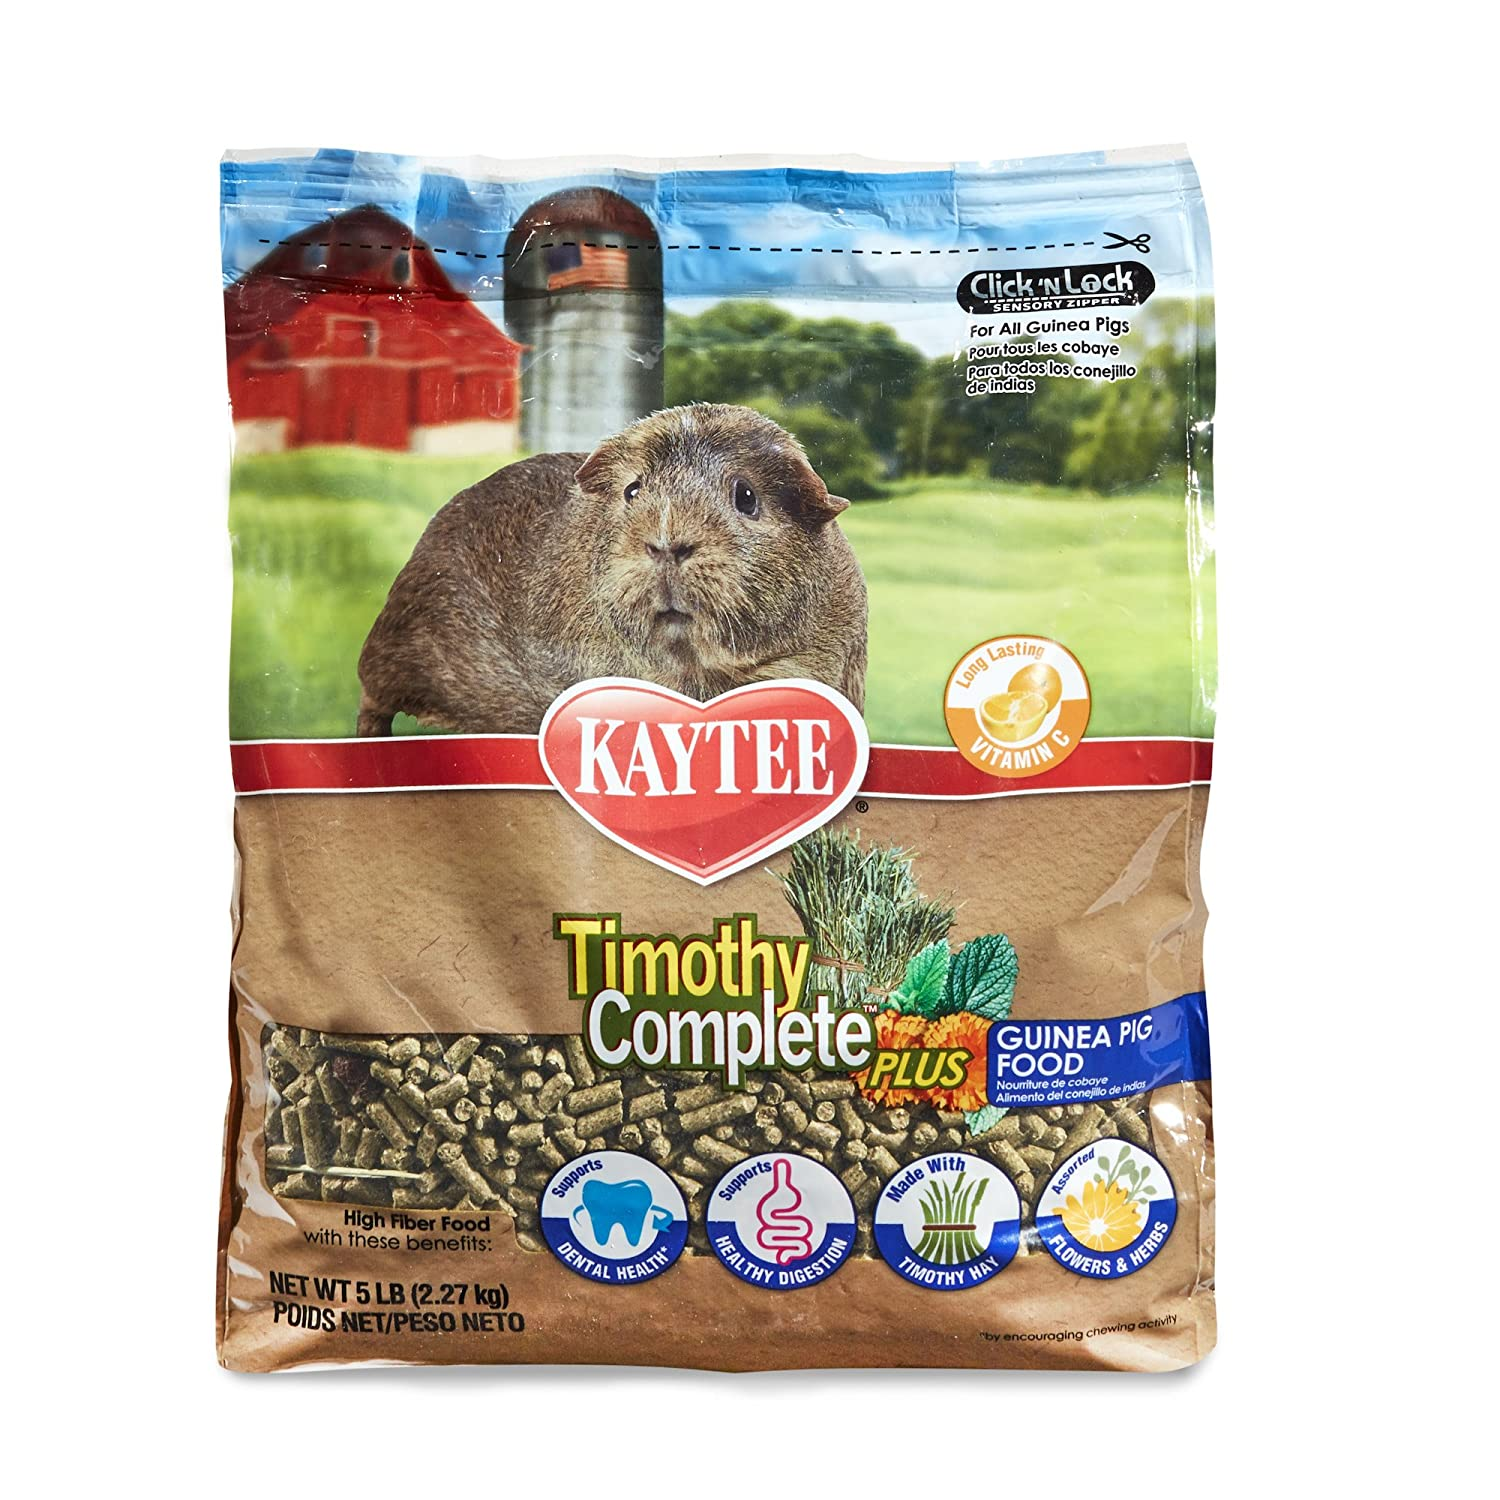 5 Pounds Kaytee Timothy Hay Complete Plus Flowers and Herbs Guinea Pig Food, 5Lb Bag